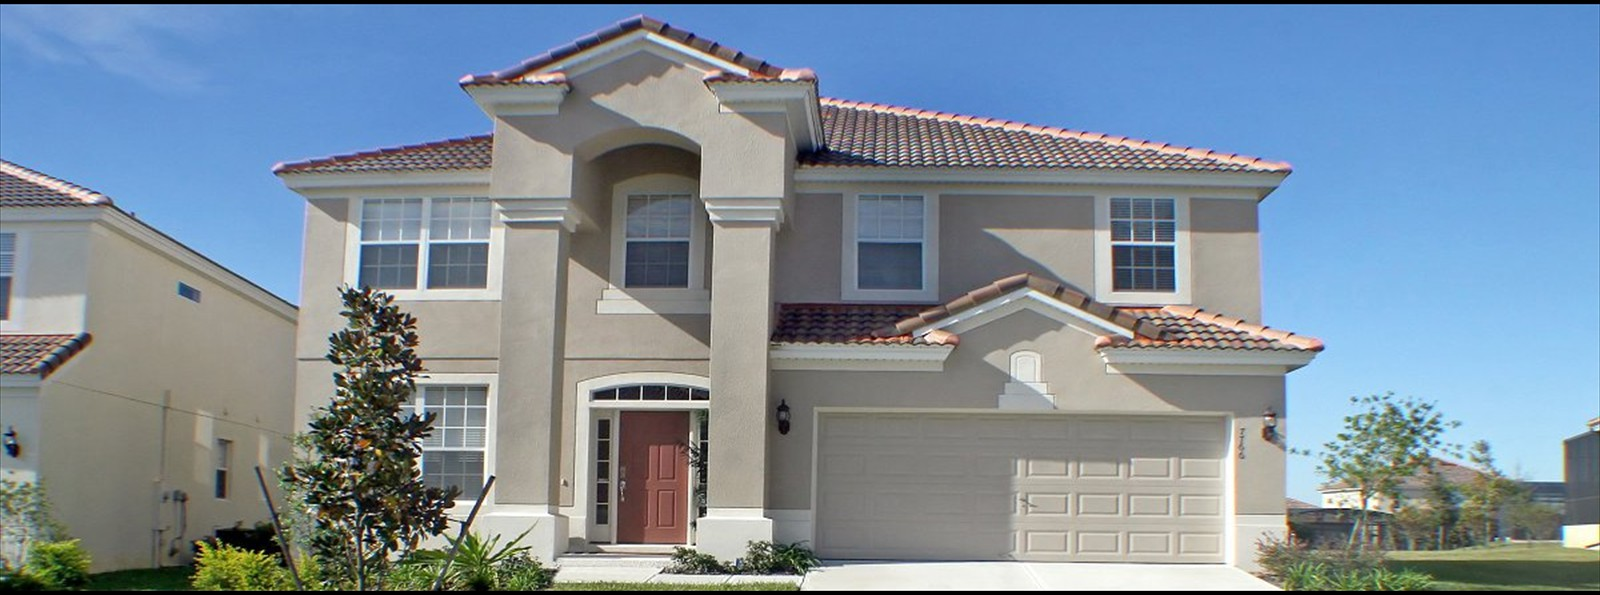 Niceville Homeowners Insurance